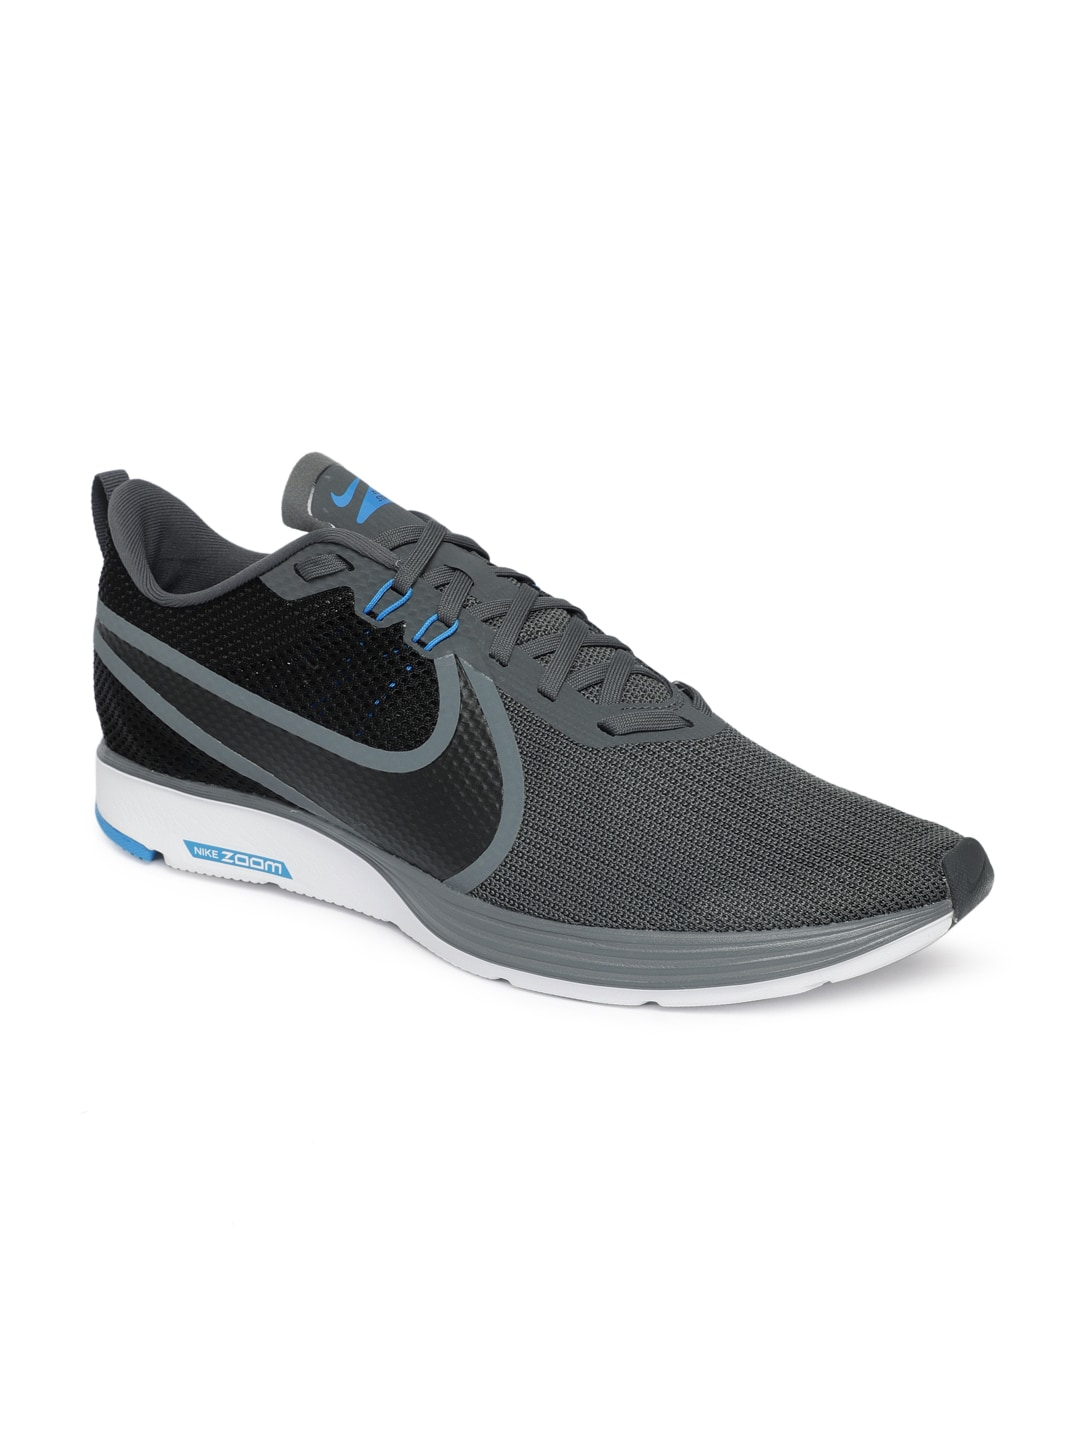 buy popular 53c7a 0eac9 Nike Running Shoes - Buy Nike Running Shoes Online   Myntra